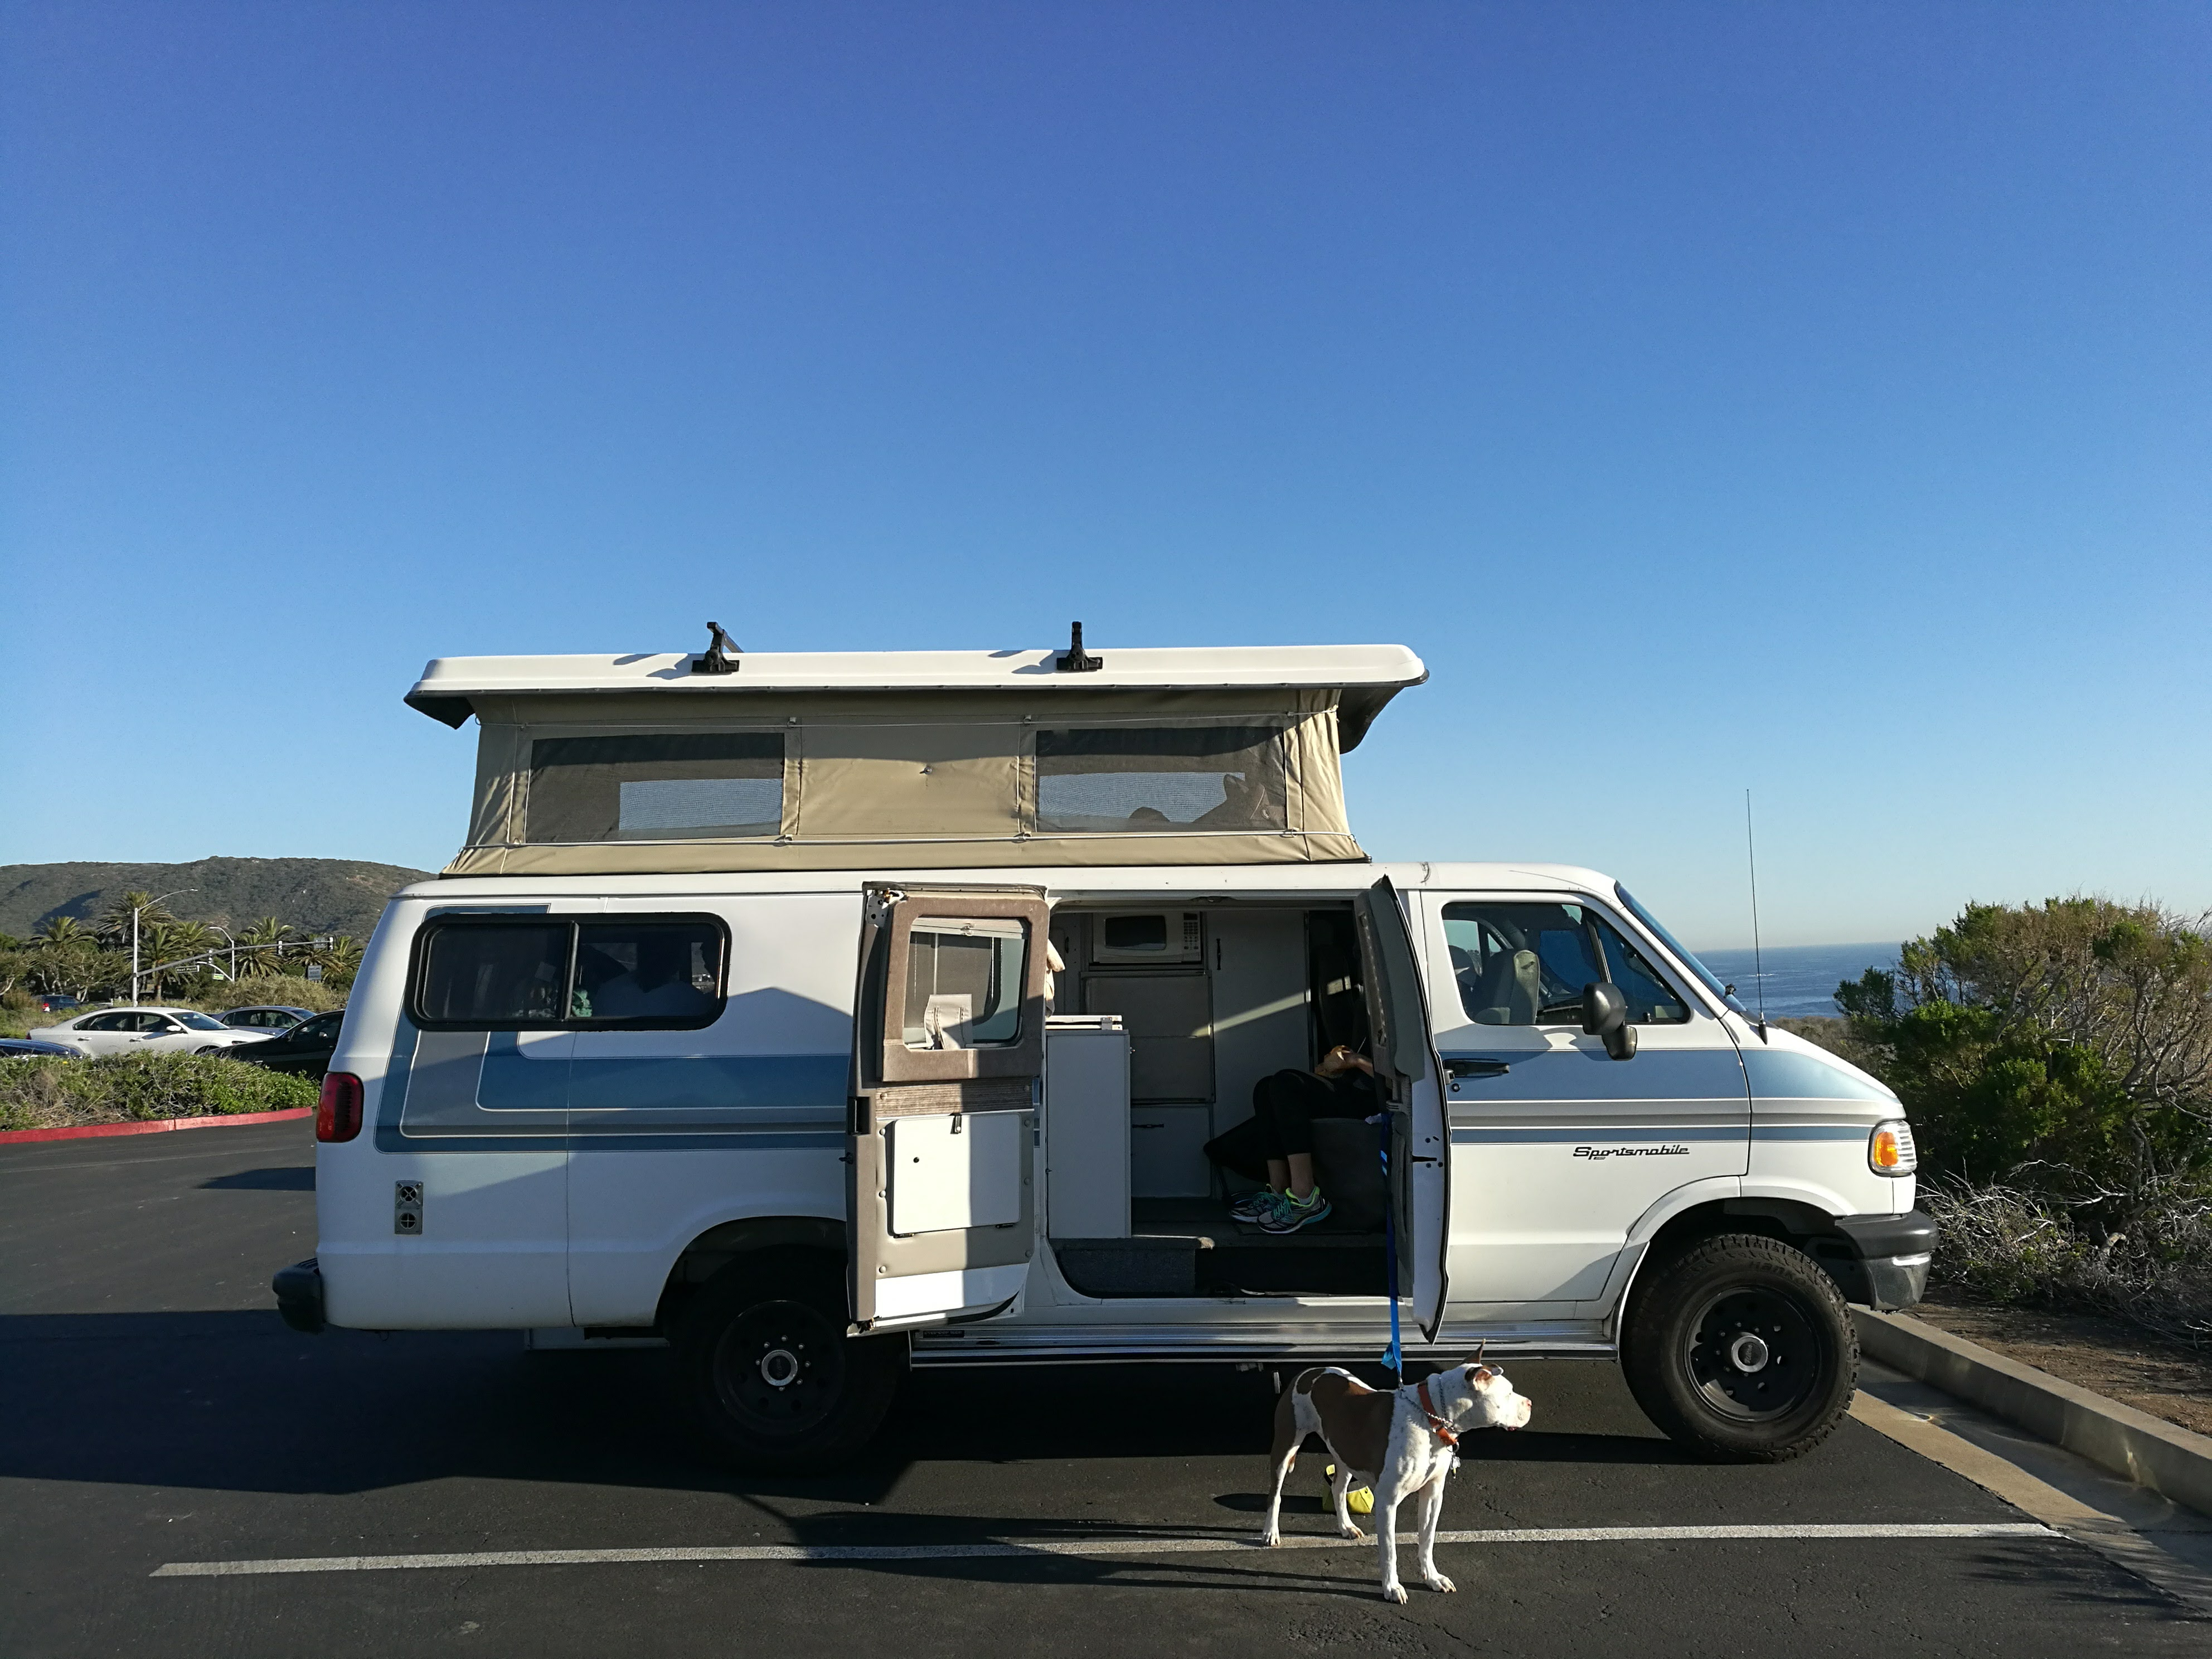 Our Camper Van Sportsmobile